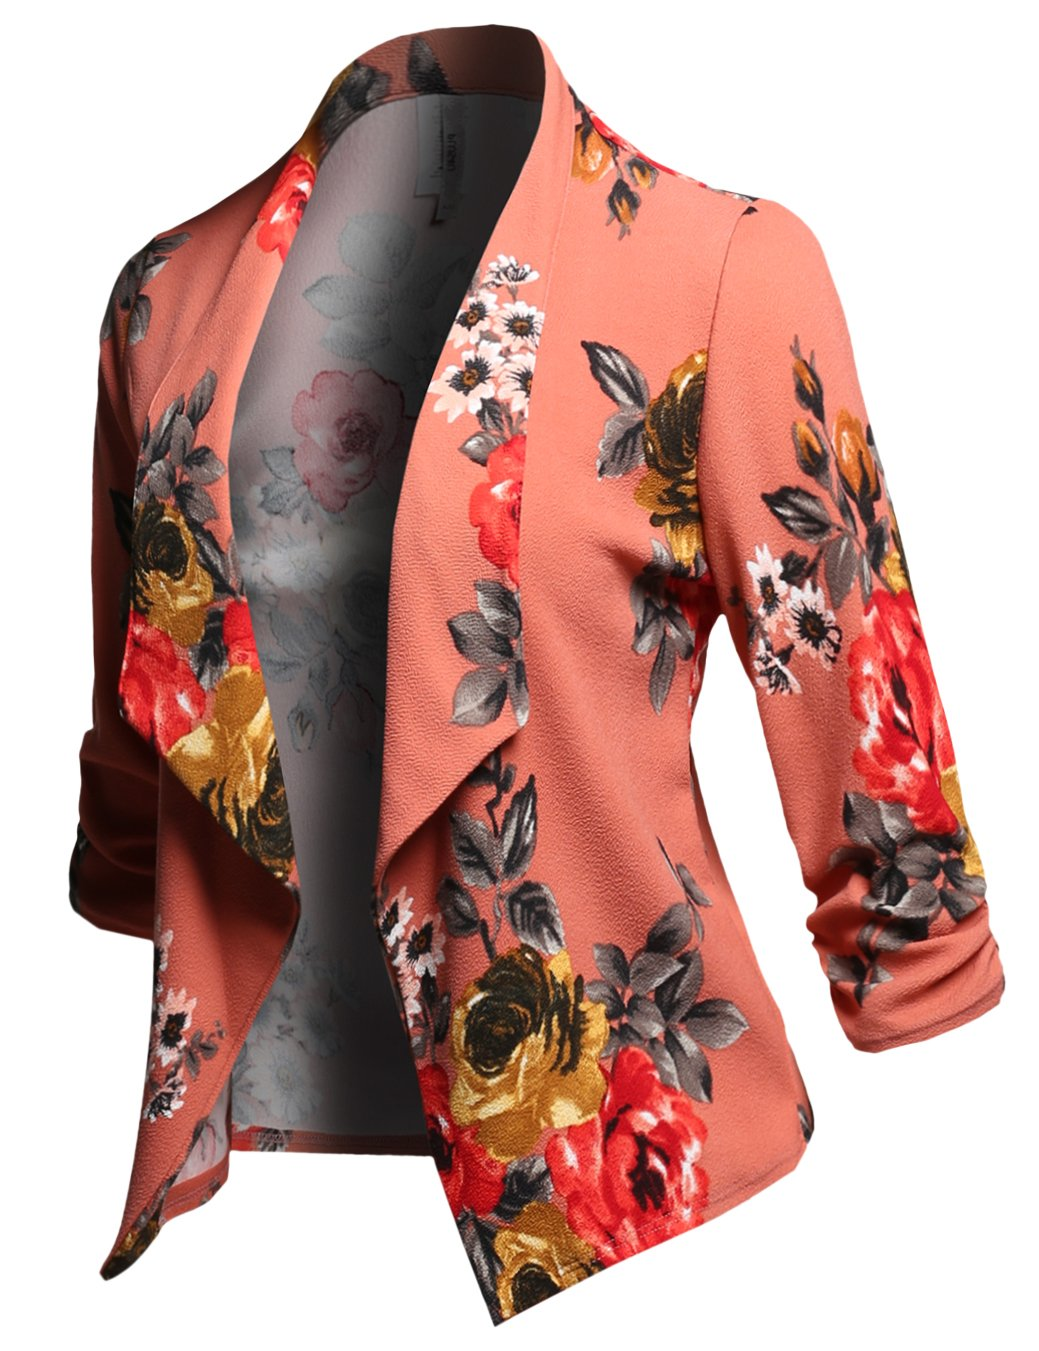 Awesome21 Stretch 3/4 Gathered Sleeve Open Blazer Jacket Coral Size XL